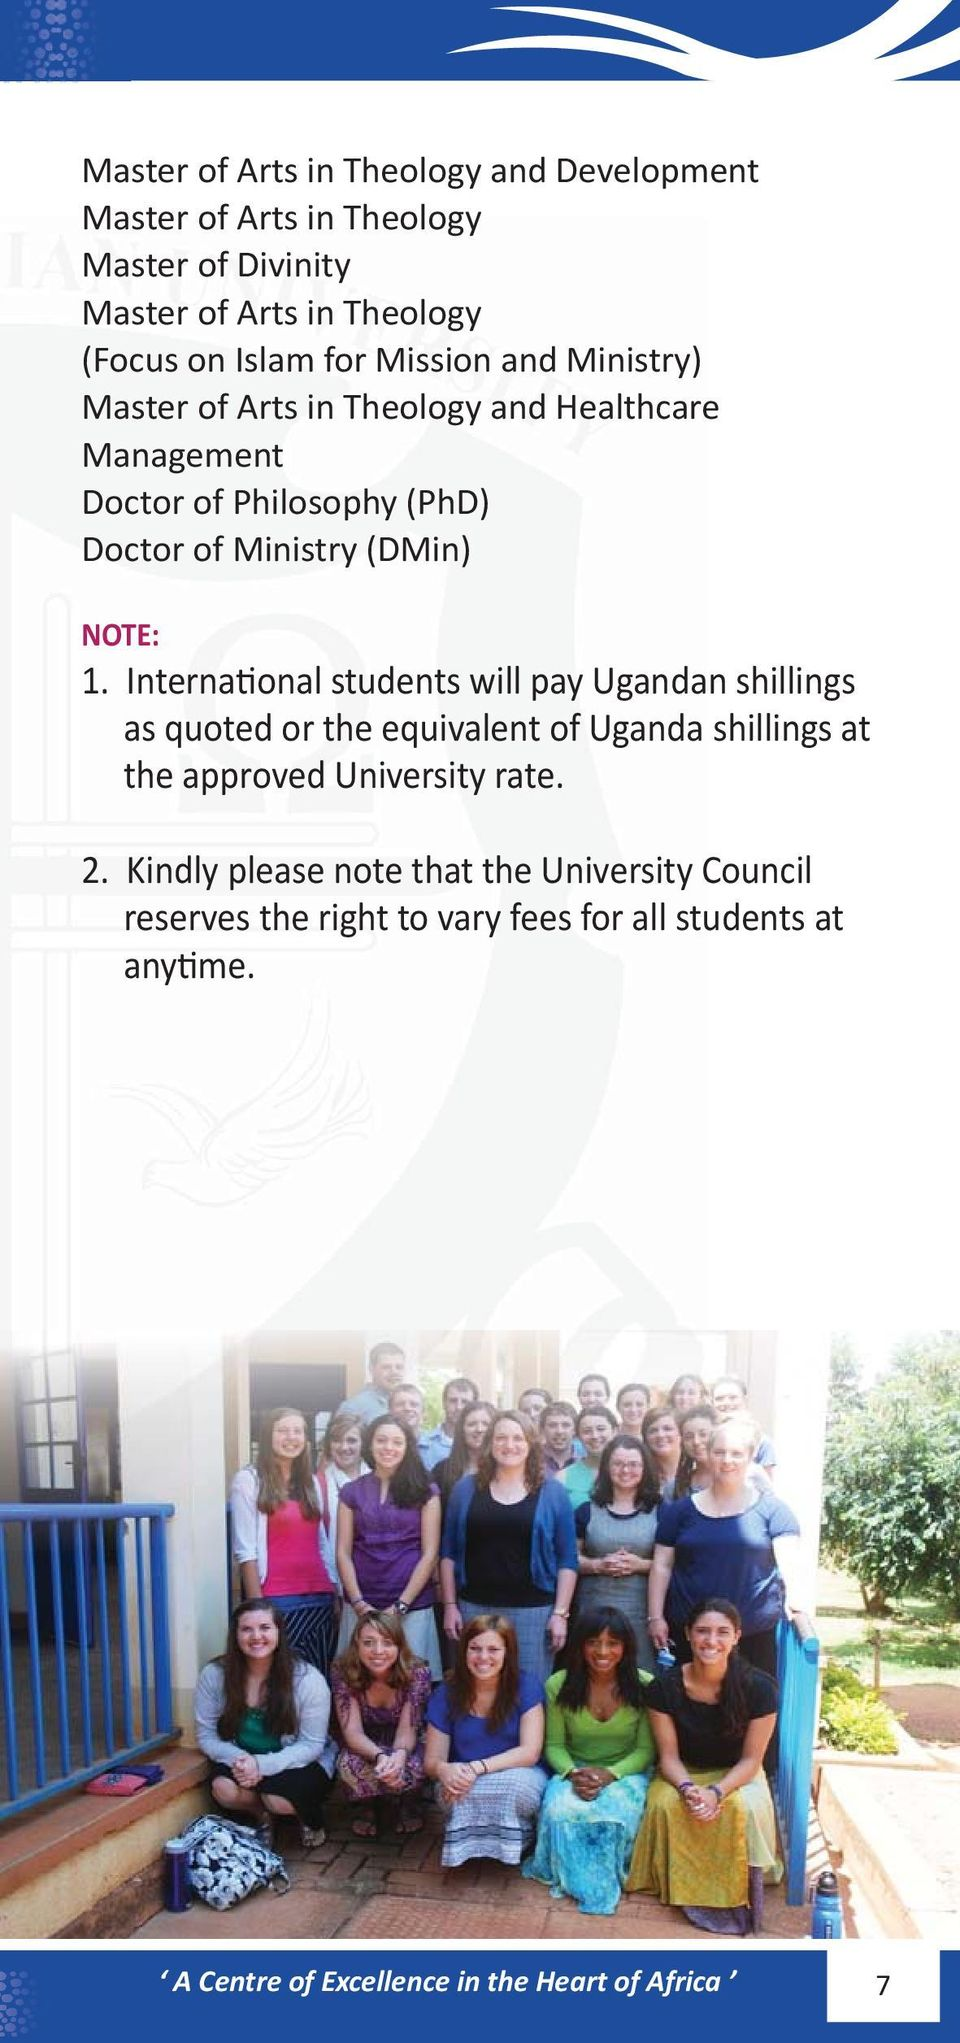 International students will pay Ugandan shillings as quoted or the equivalent of Uganda shillings at the approved University rate. 2.